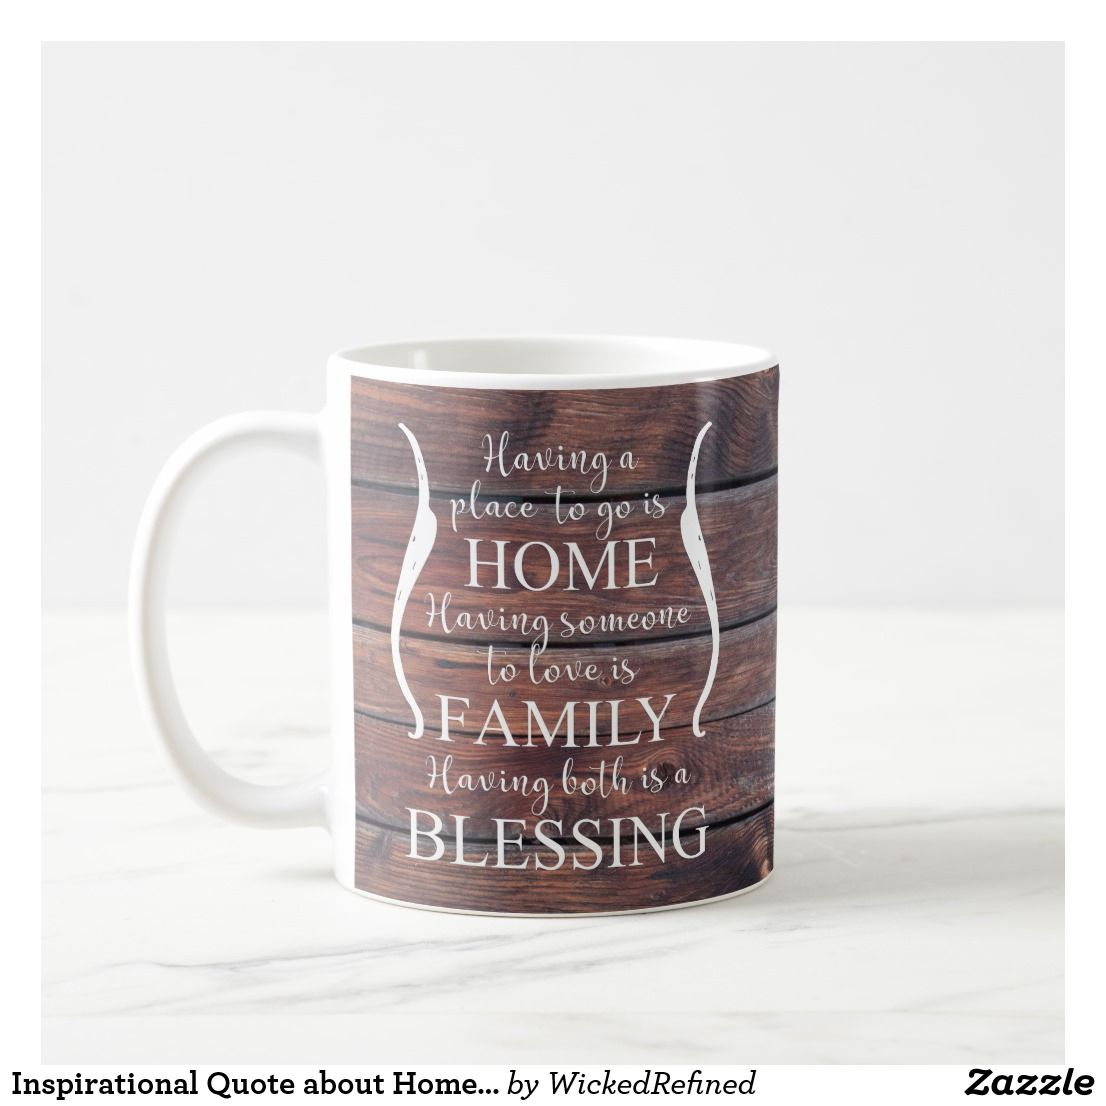 Coffee Mug Inspirational Quote About Home   Family   Blessing Wood  Background #zazzle #gift